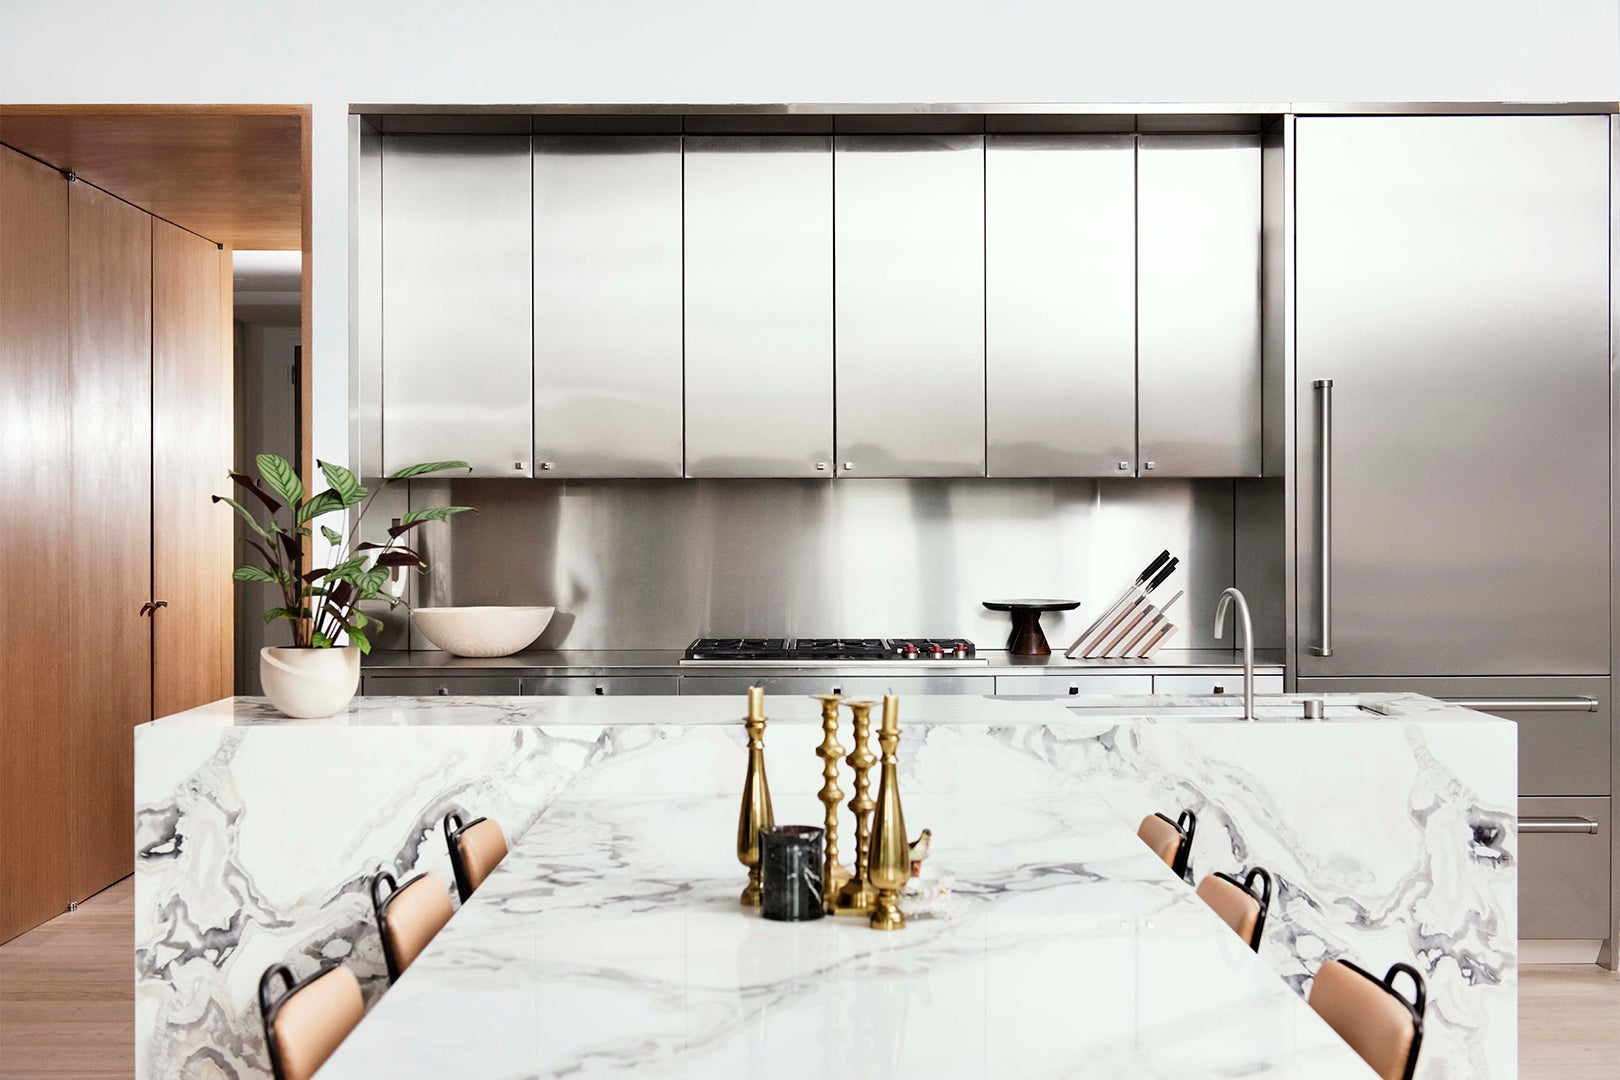 00-FEATURE-metal-kitchen-cabinets-domino